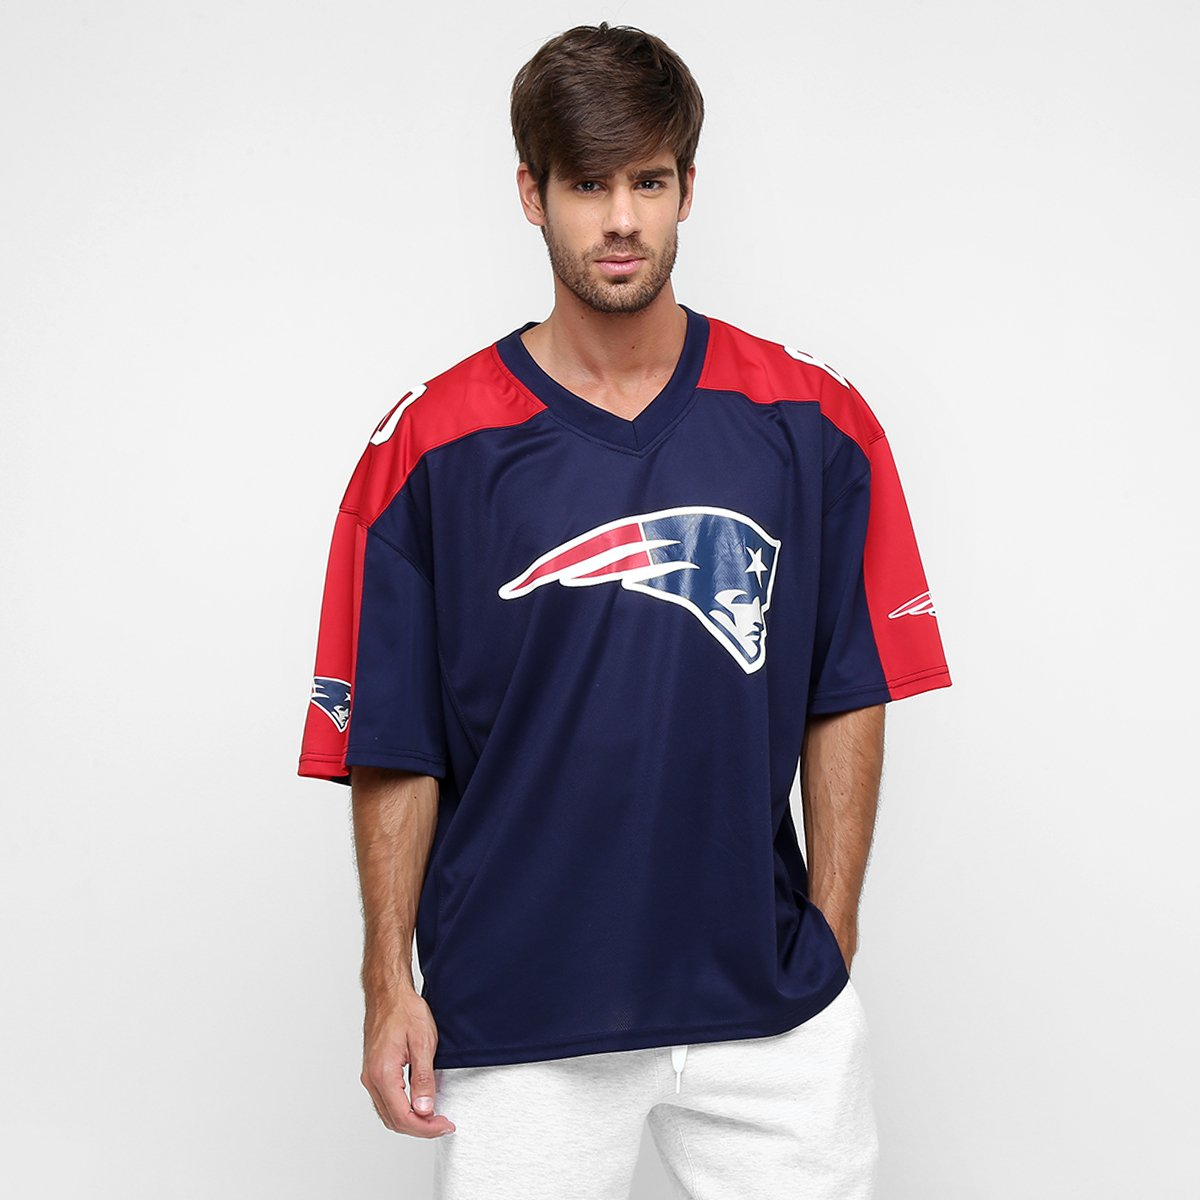 Camiseta New Era NFL Jersey Synthetic New England Patriots - Compre ... ad47c51c2d2